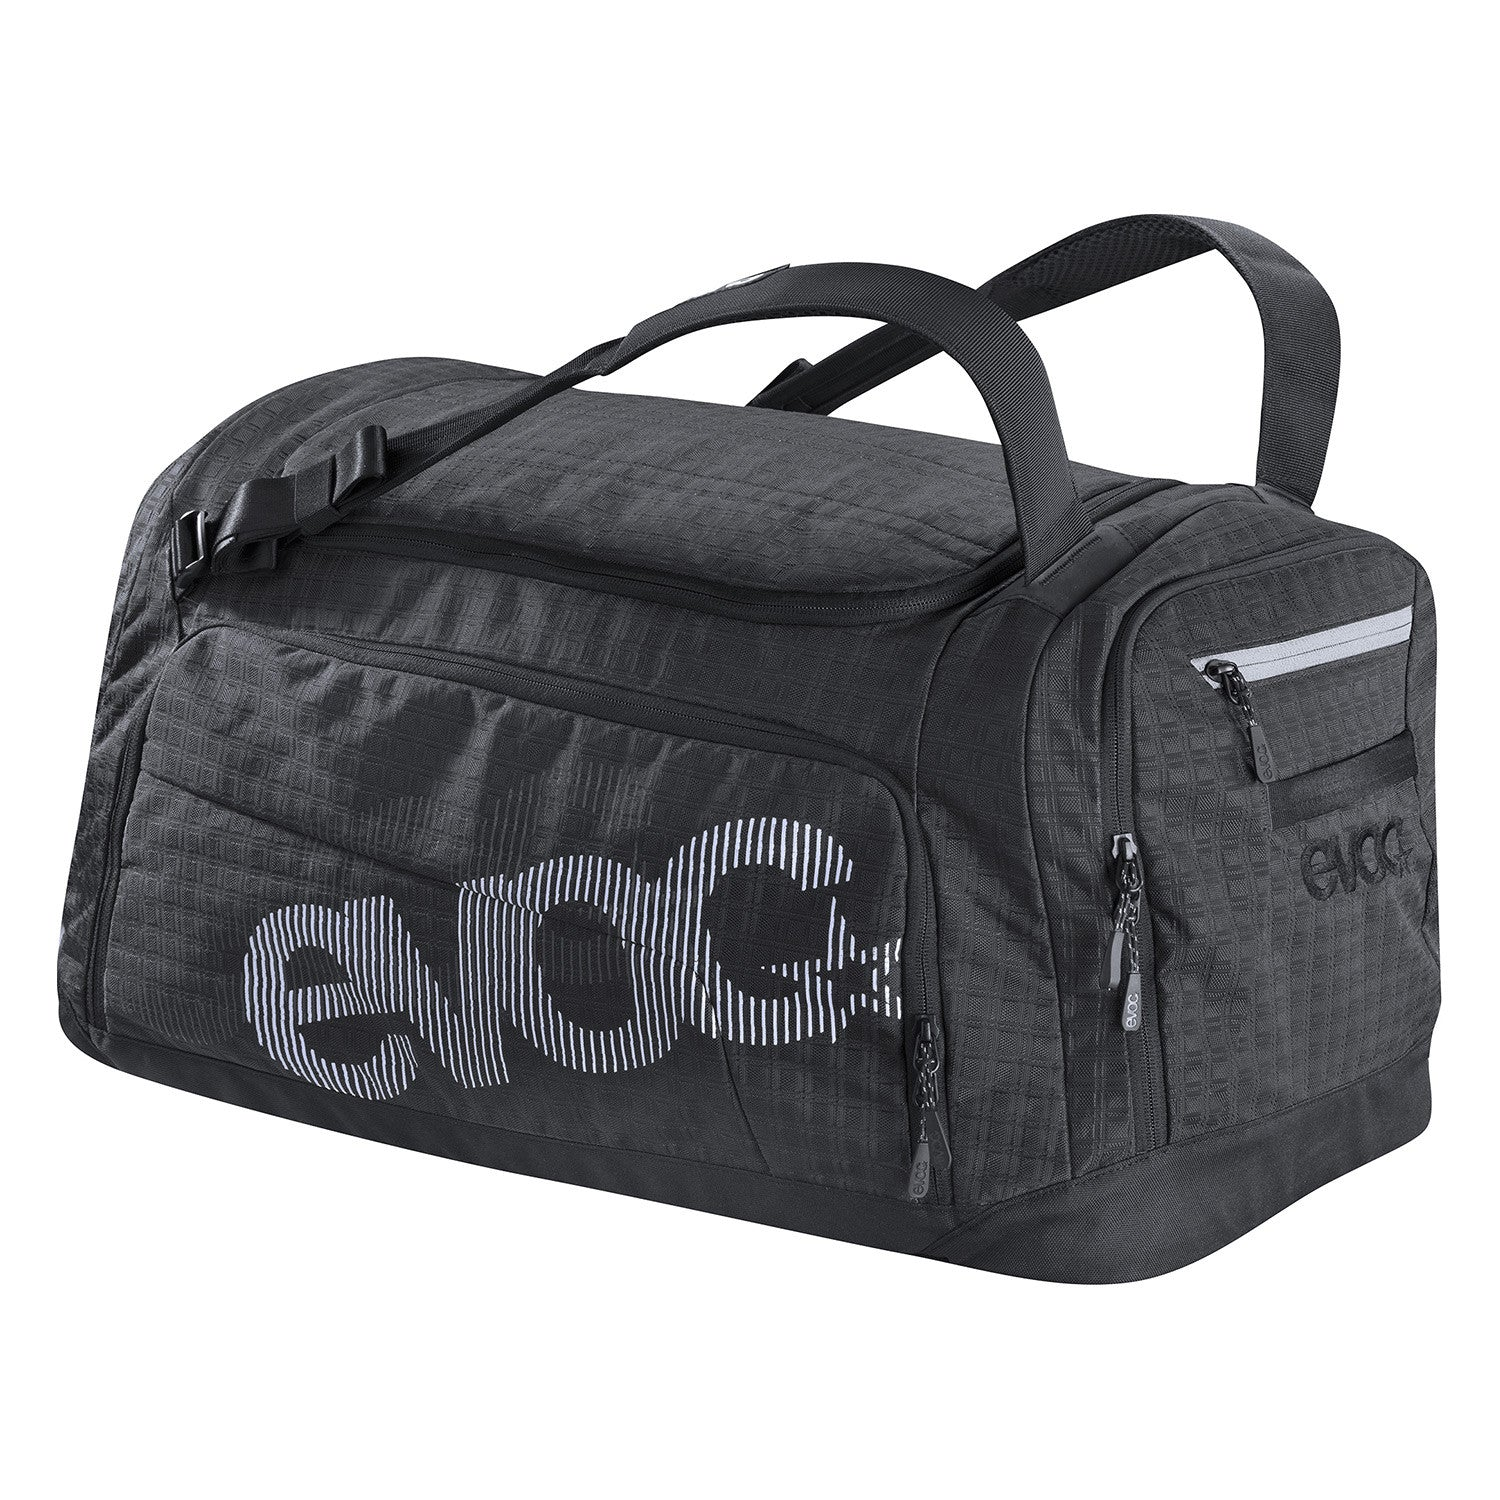 Transition Bag - Black by EVOC